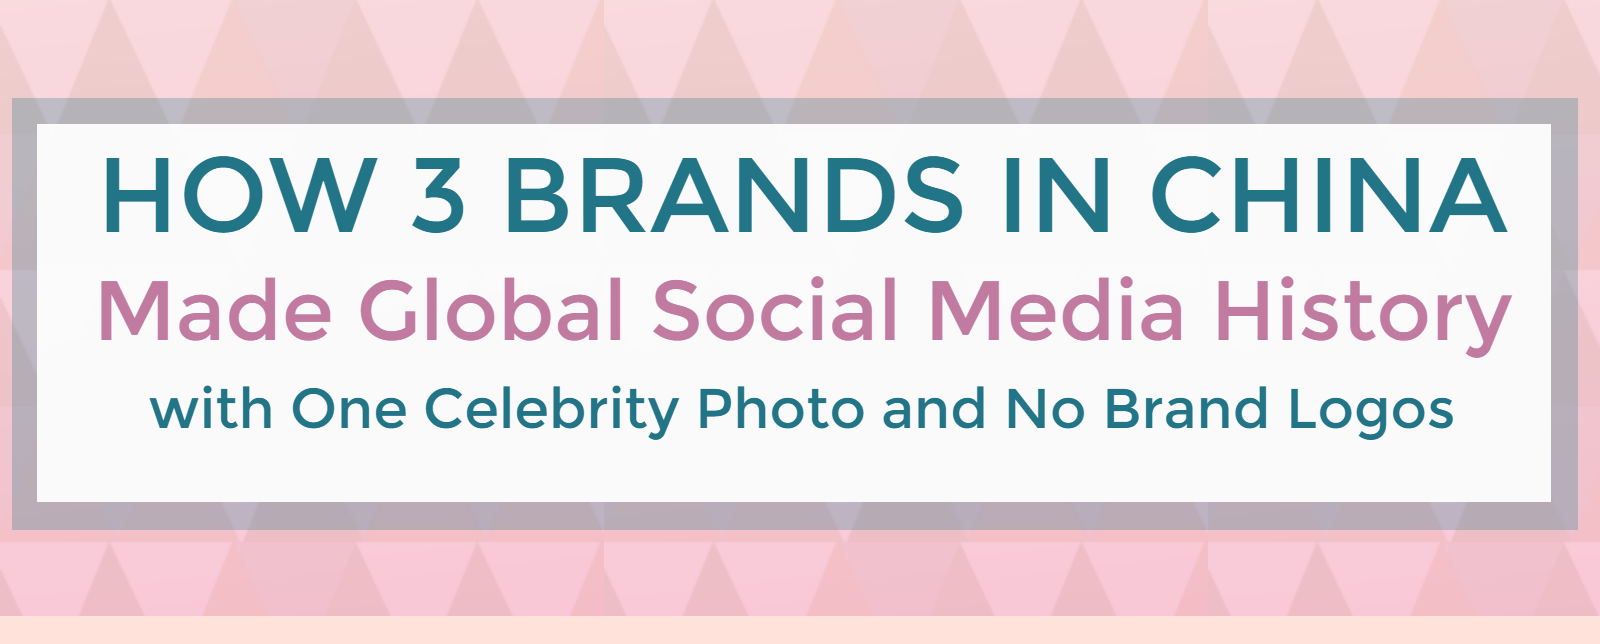 how-3-brands-made-social-media-history-bingbing-us_1435649226517_block_0